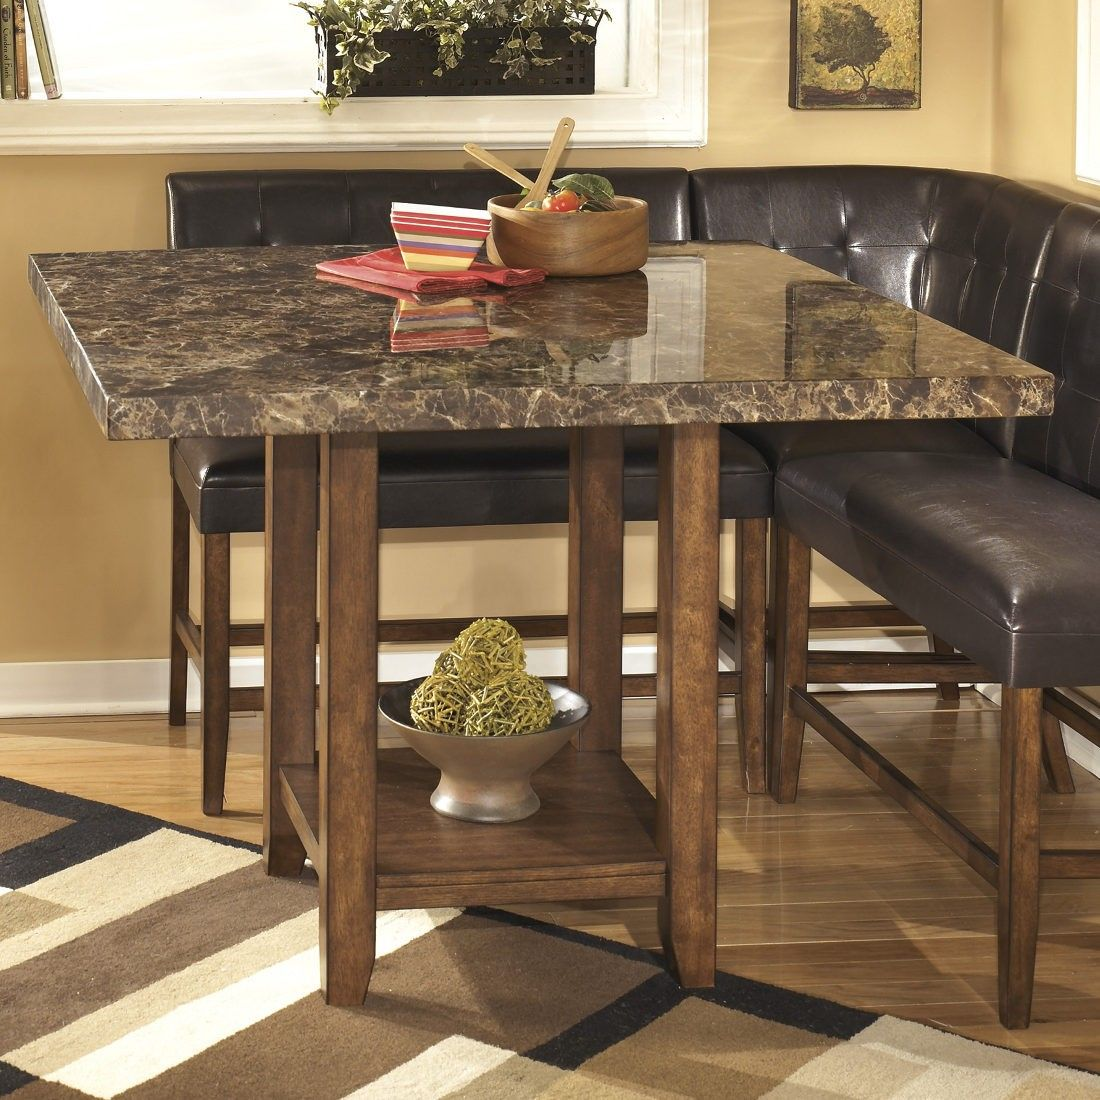 Ashley Furniture Lacey Square Drum Counter Table In Medium Brown Brown Dining Table Dining Table In Kitchen Dining Table